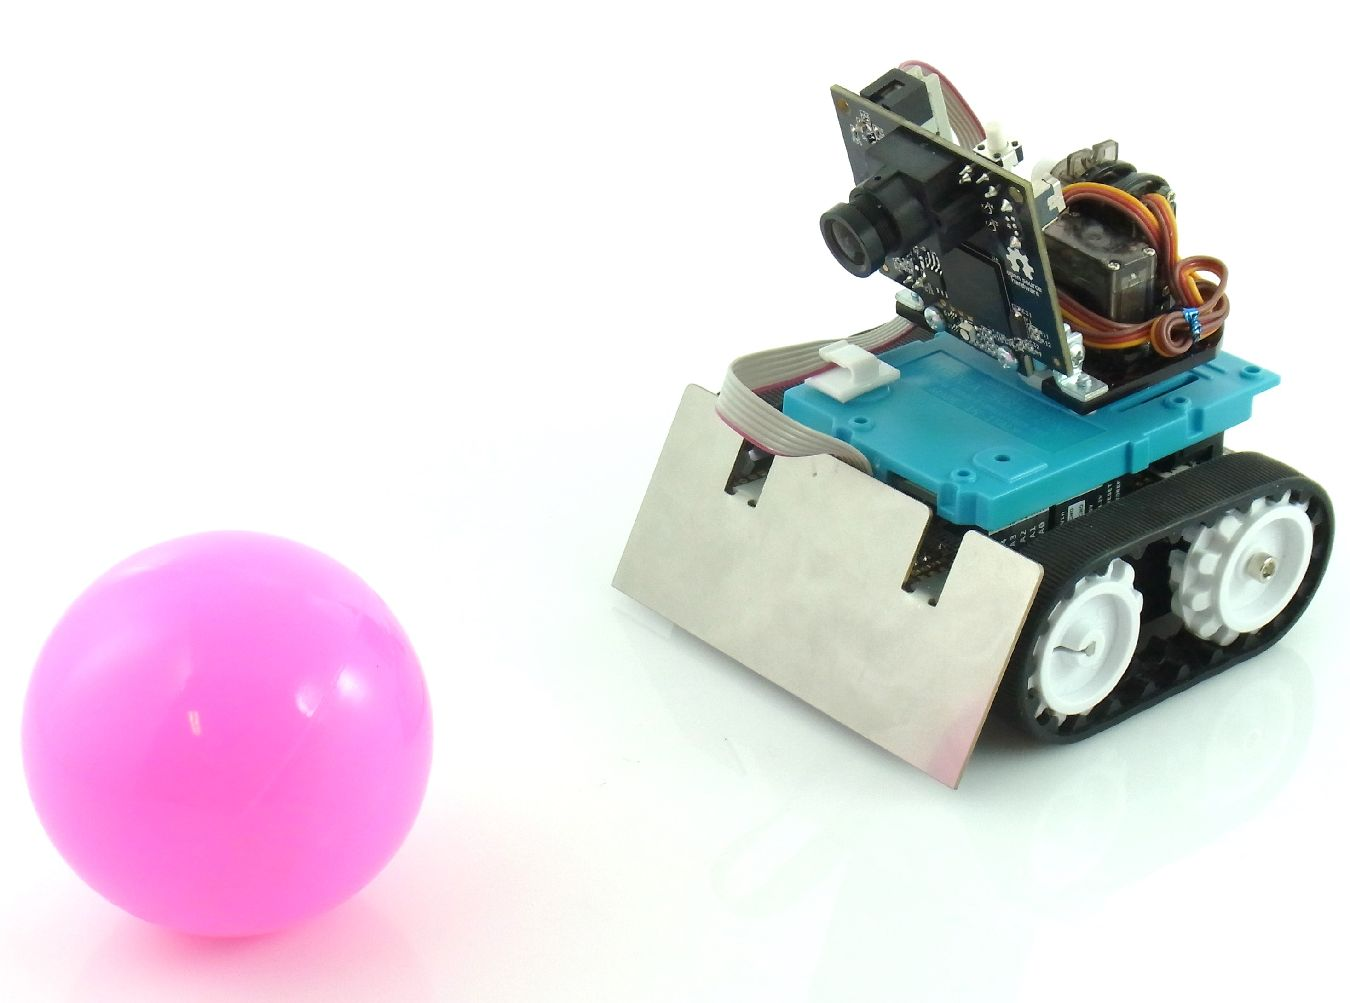 pixy on zumoキット 組立済み 画像認識追従robot physical